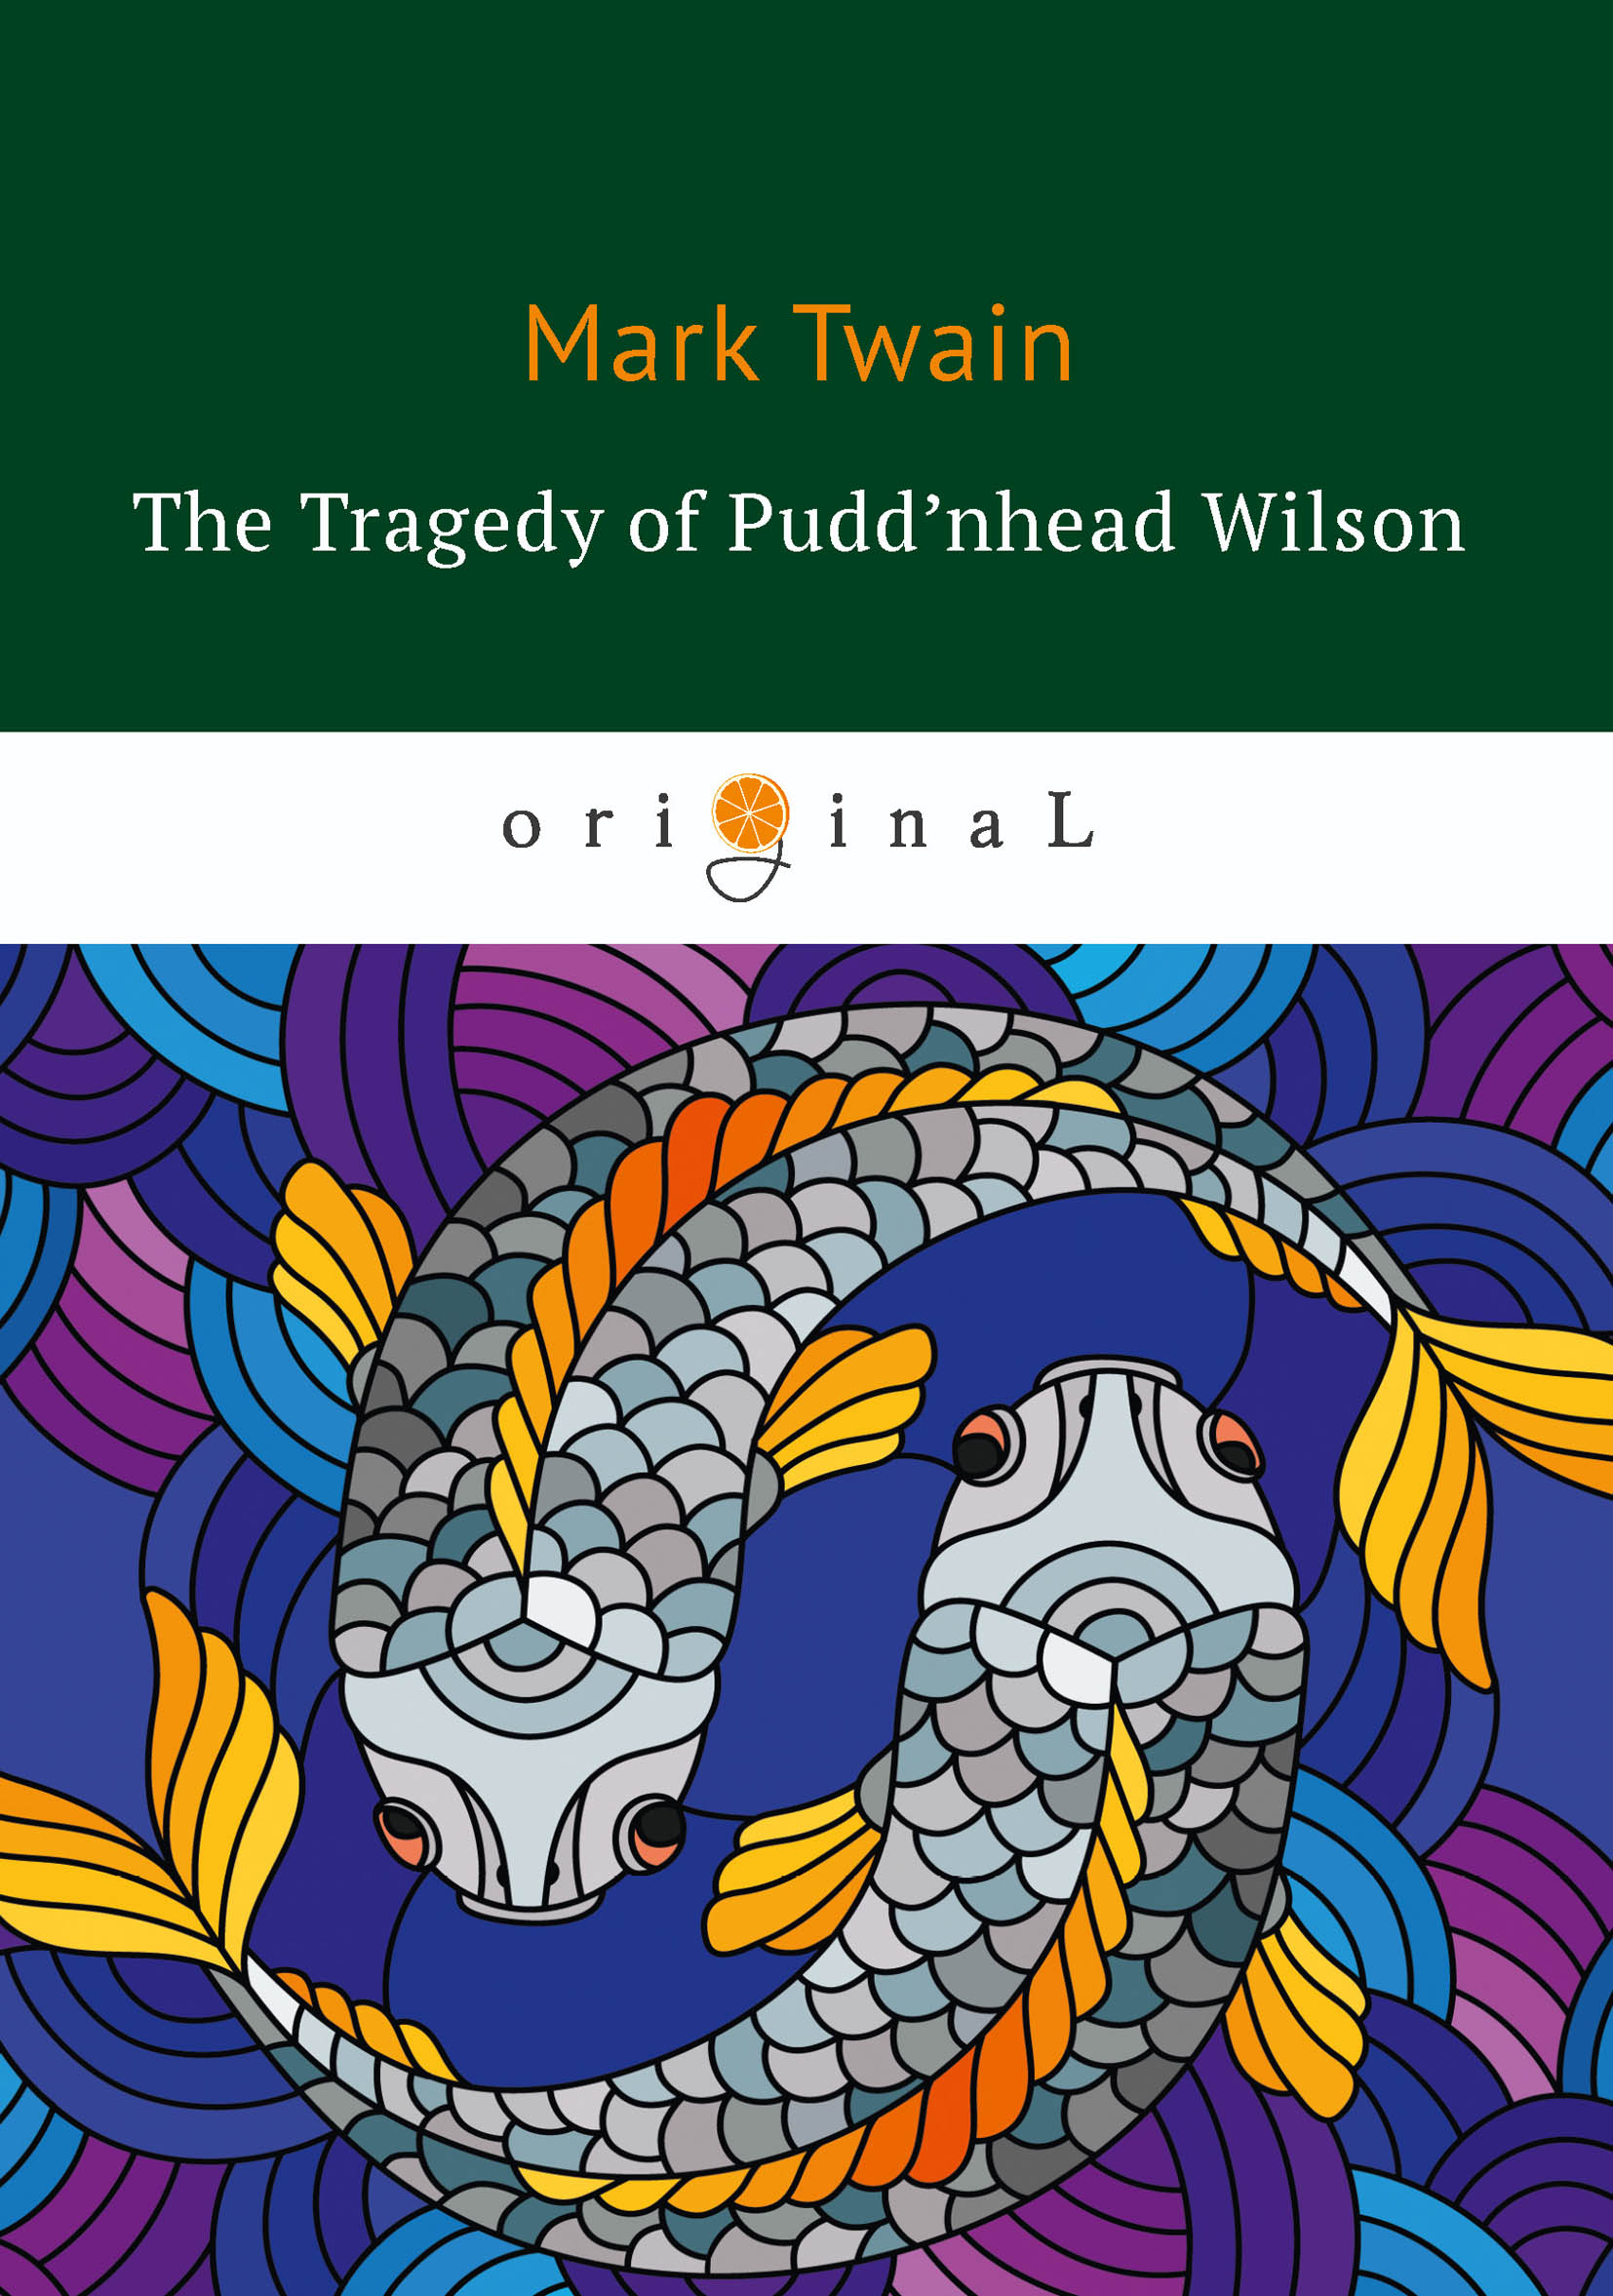 M. Twain The Tragedy of Pudd'nhead Wilson m twain the tragedy of pudd'nhead wilson